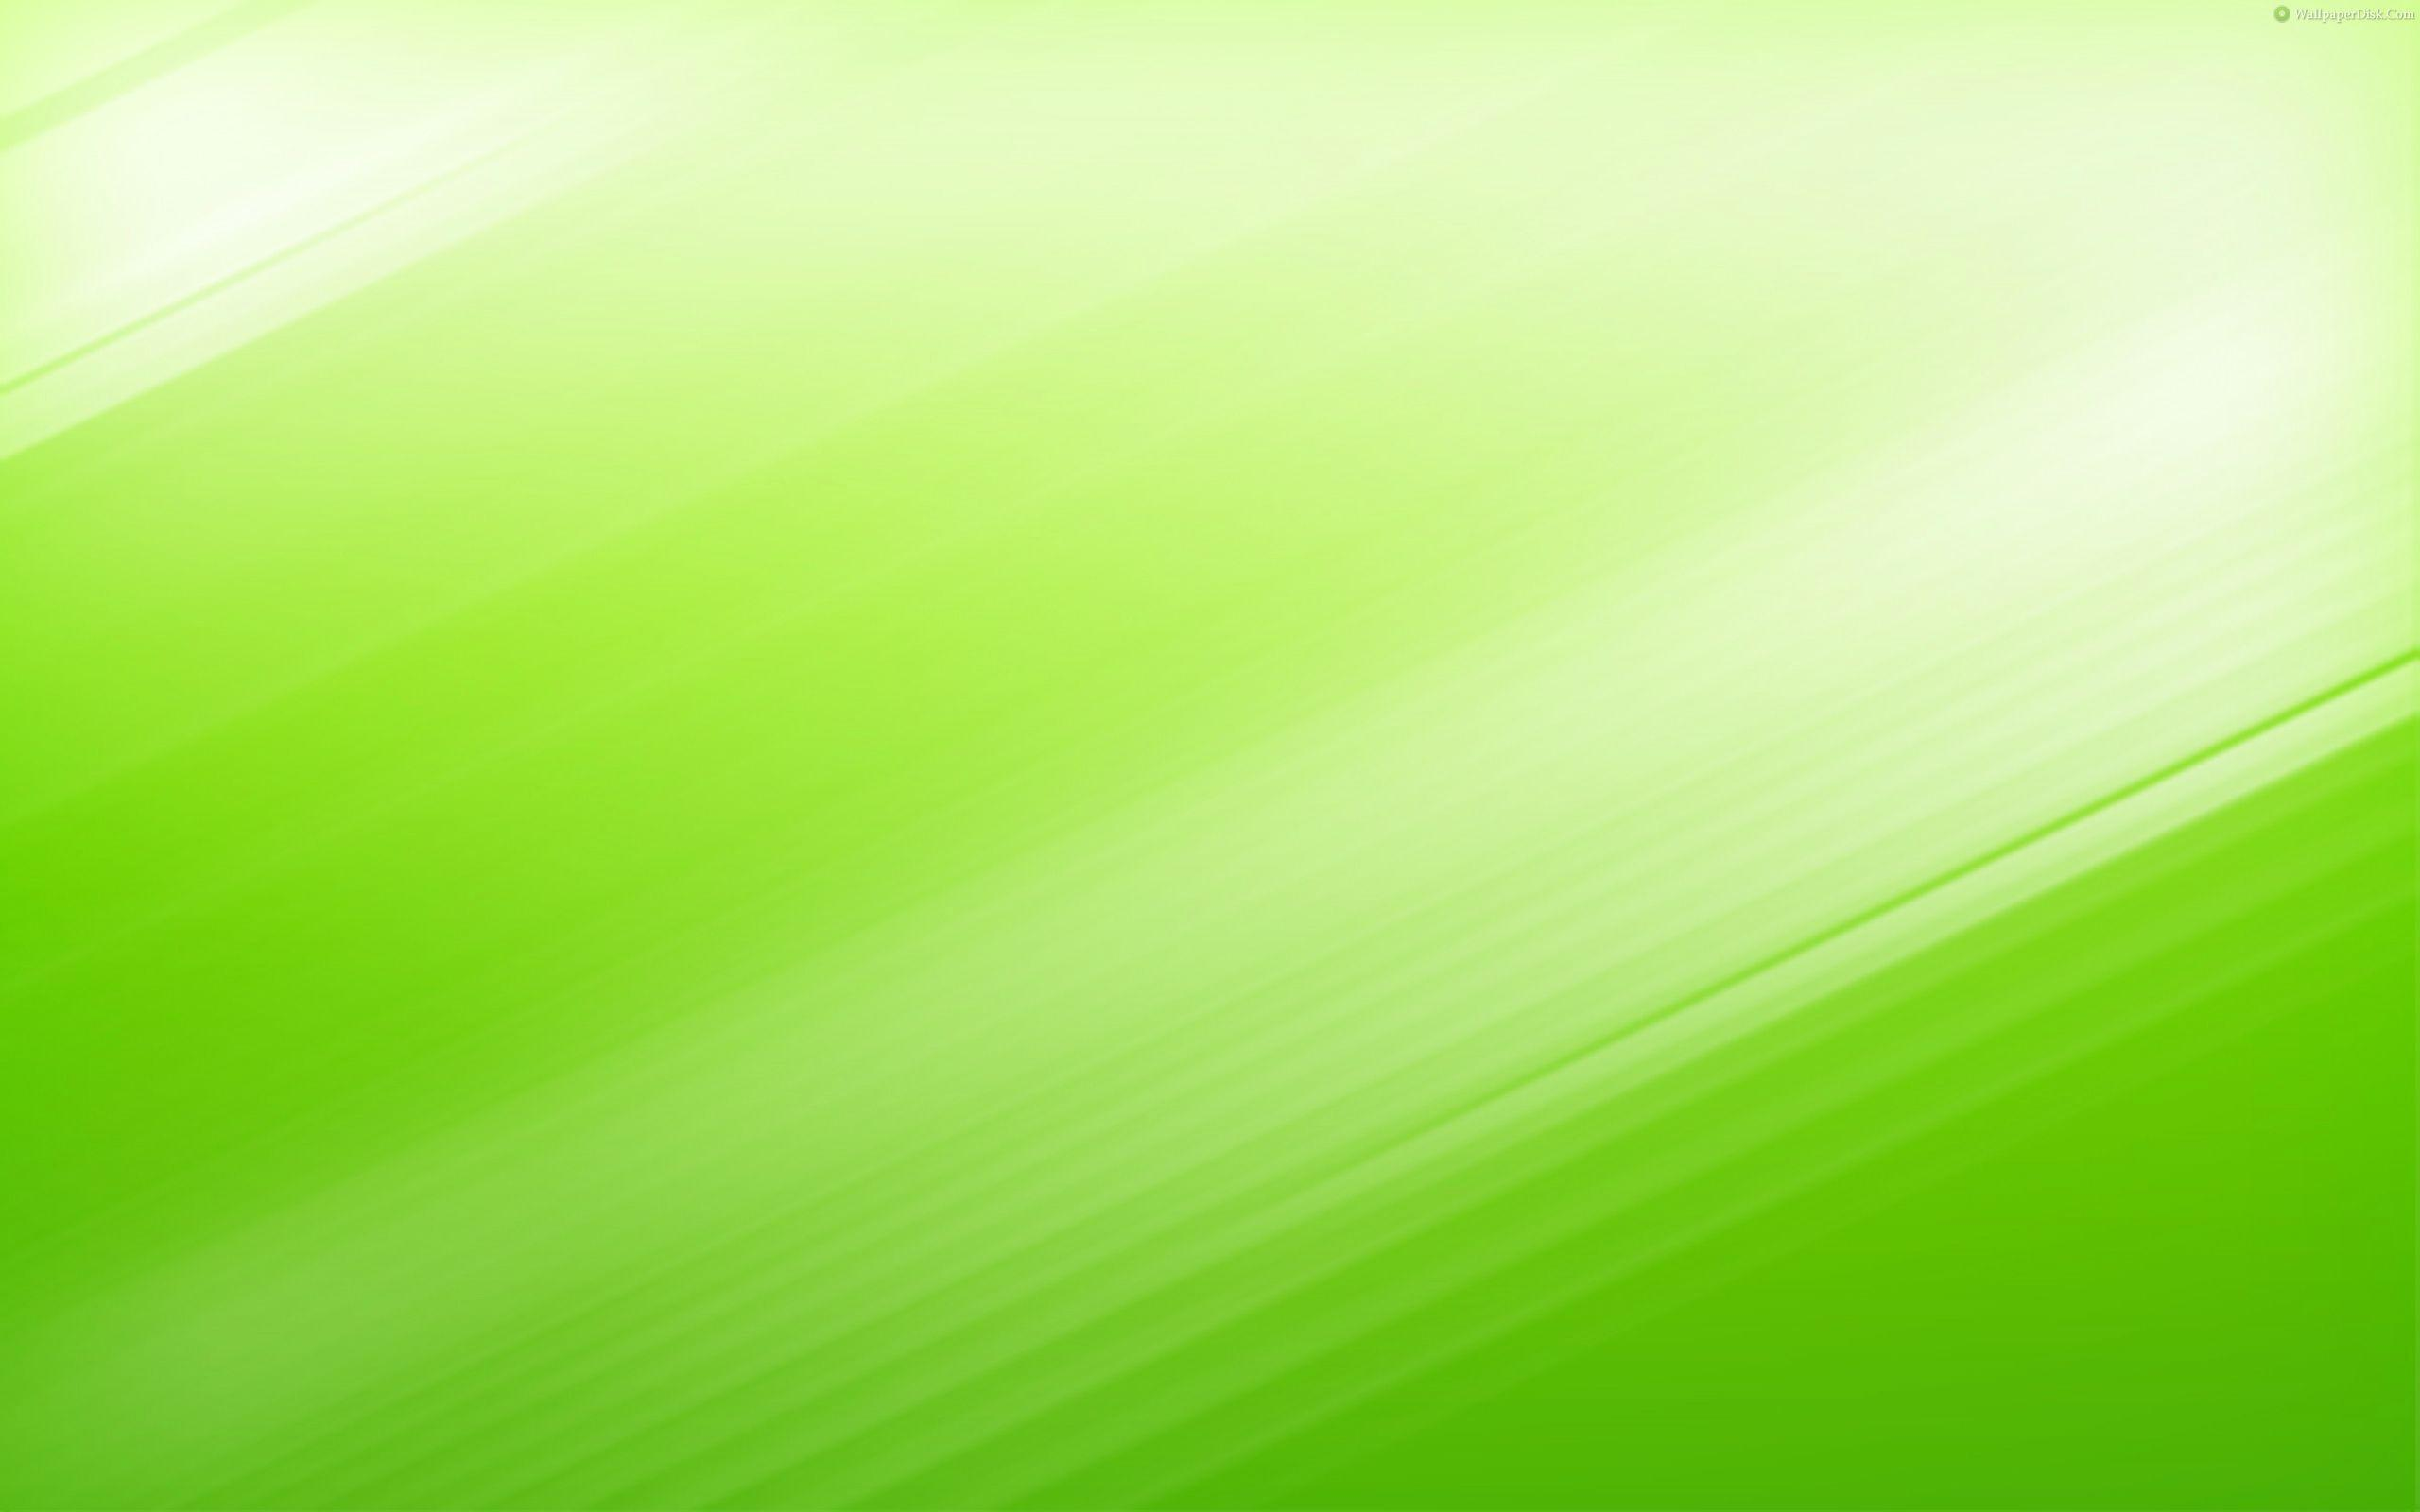 Green Backgrounds Image Wallpaper